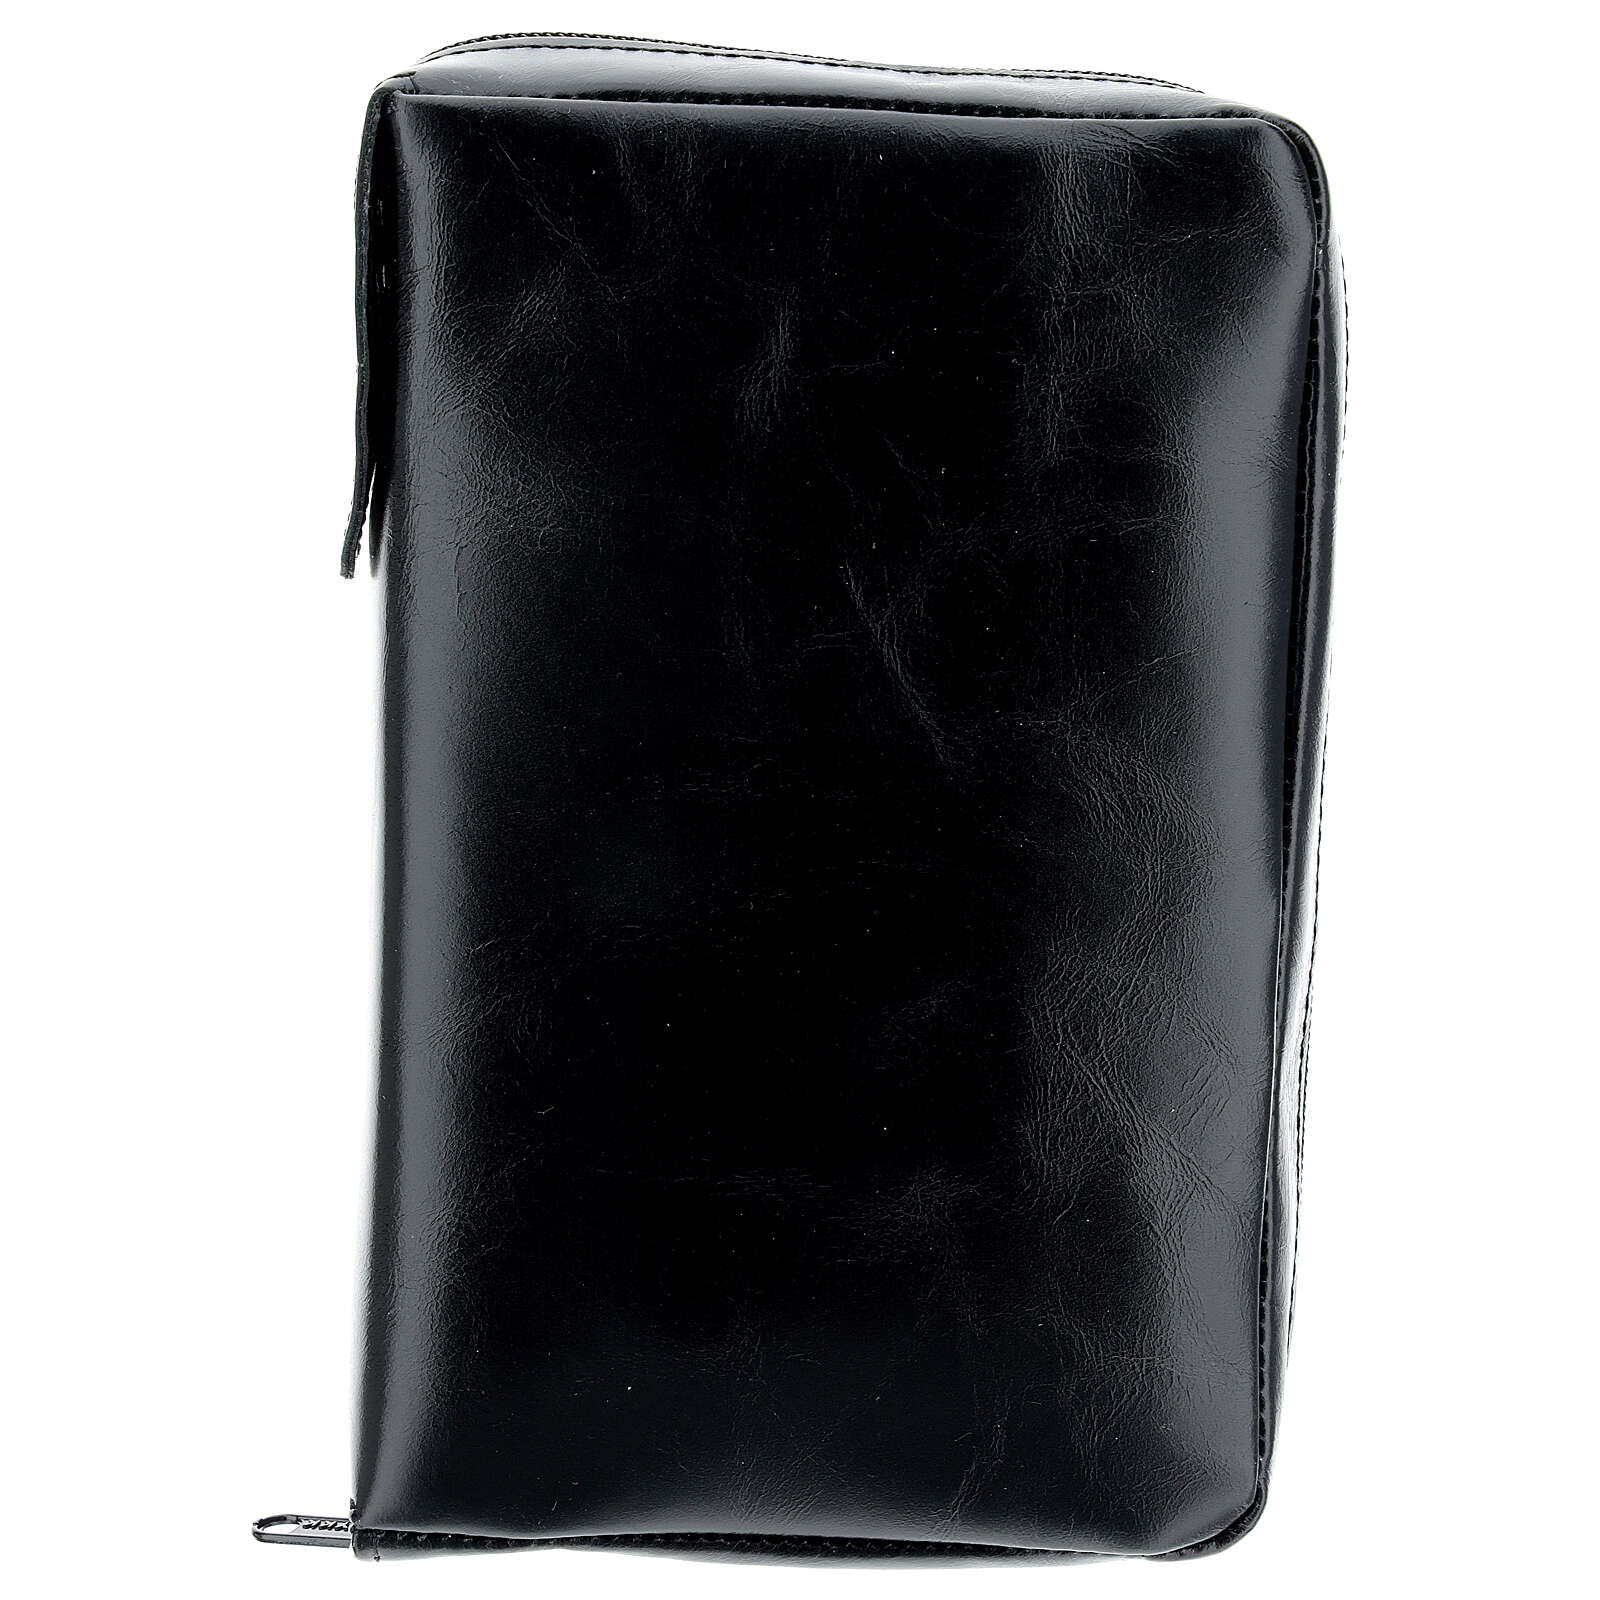 Real black leather case Daily Missal St. Paul III EDITION 4